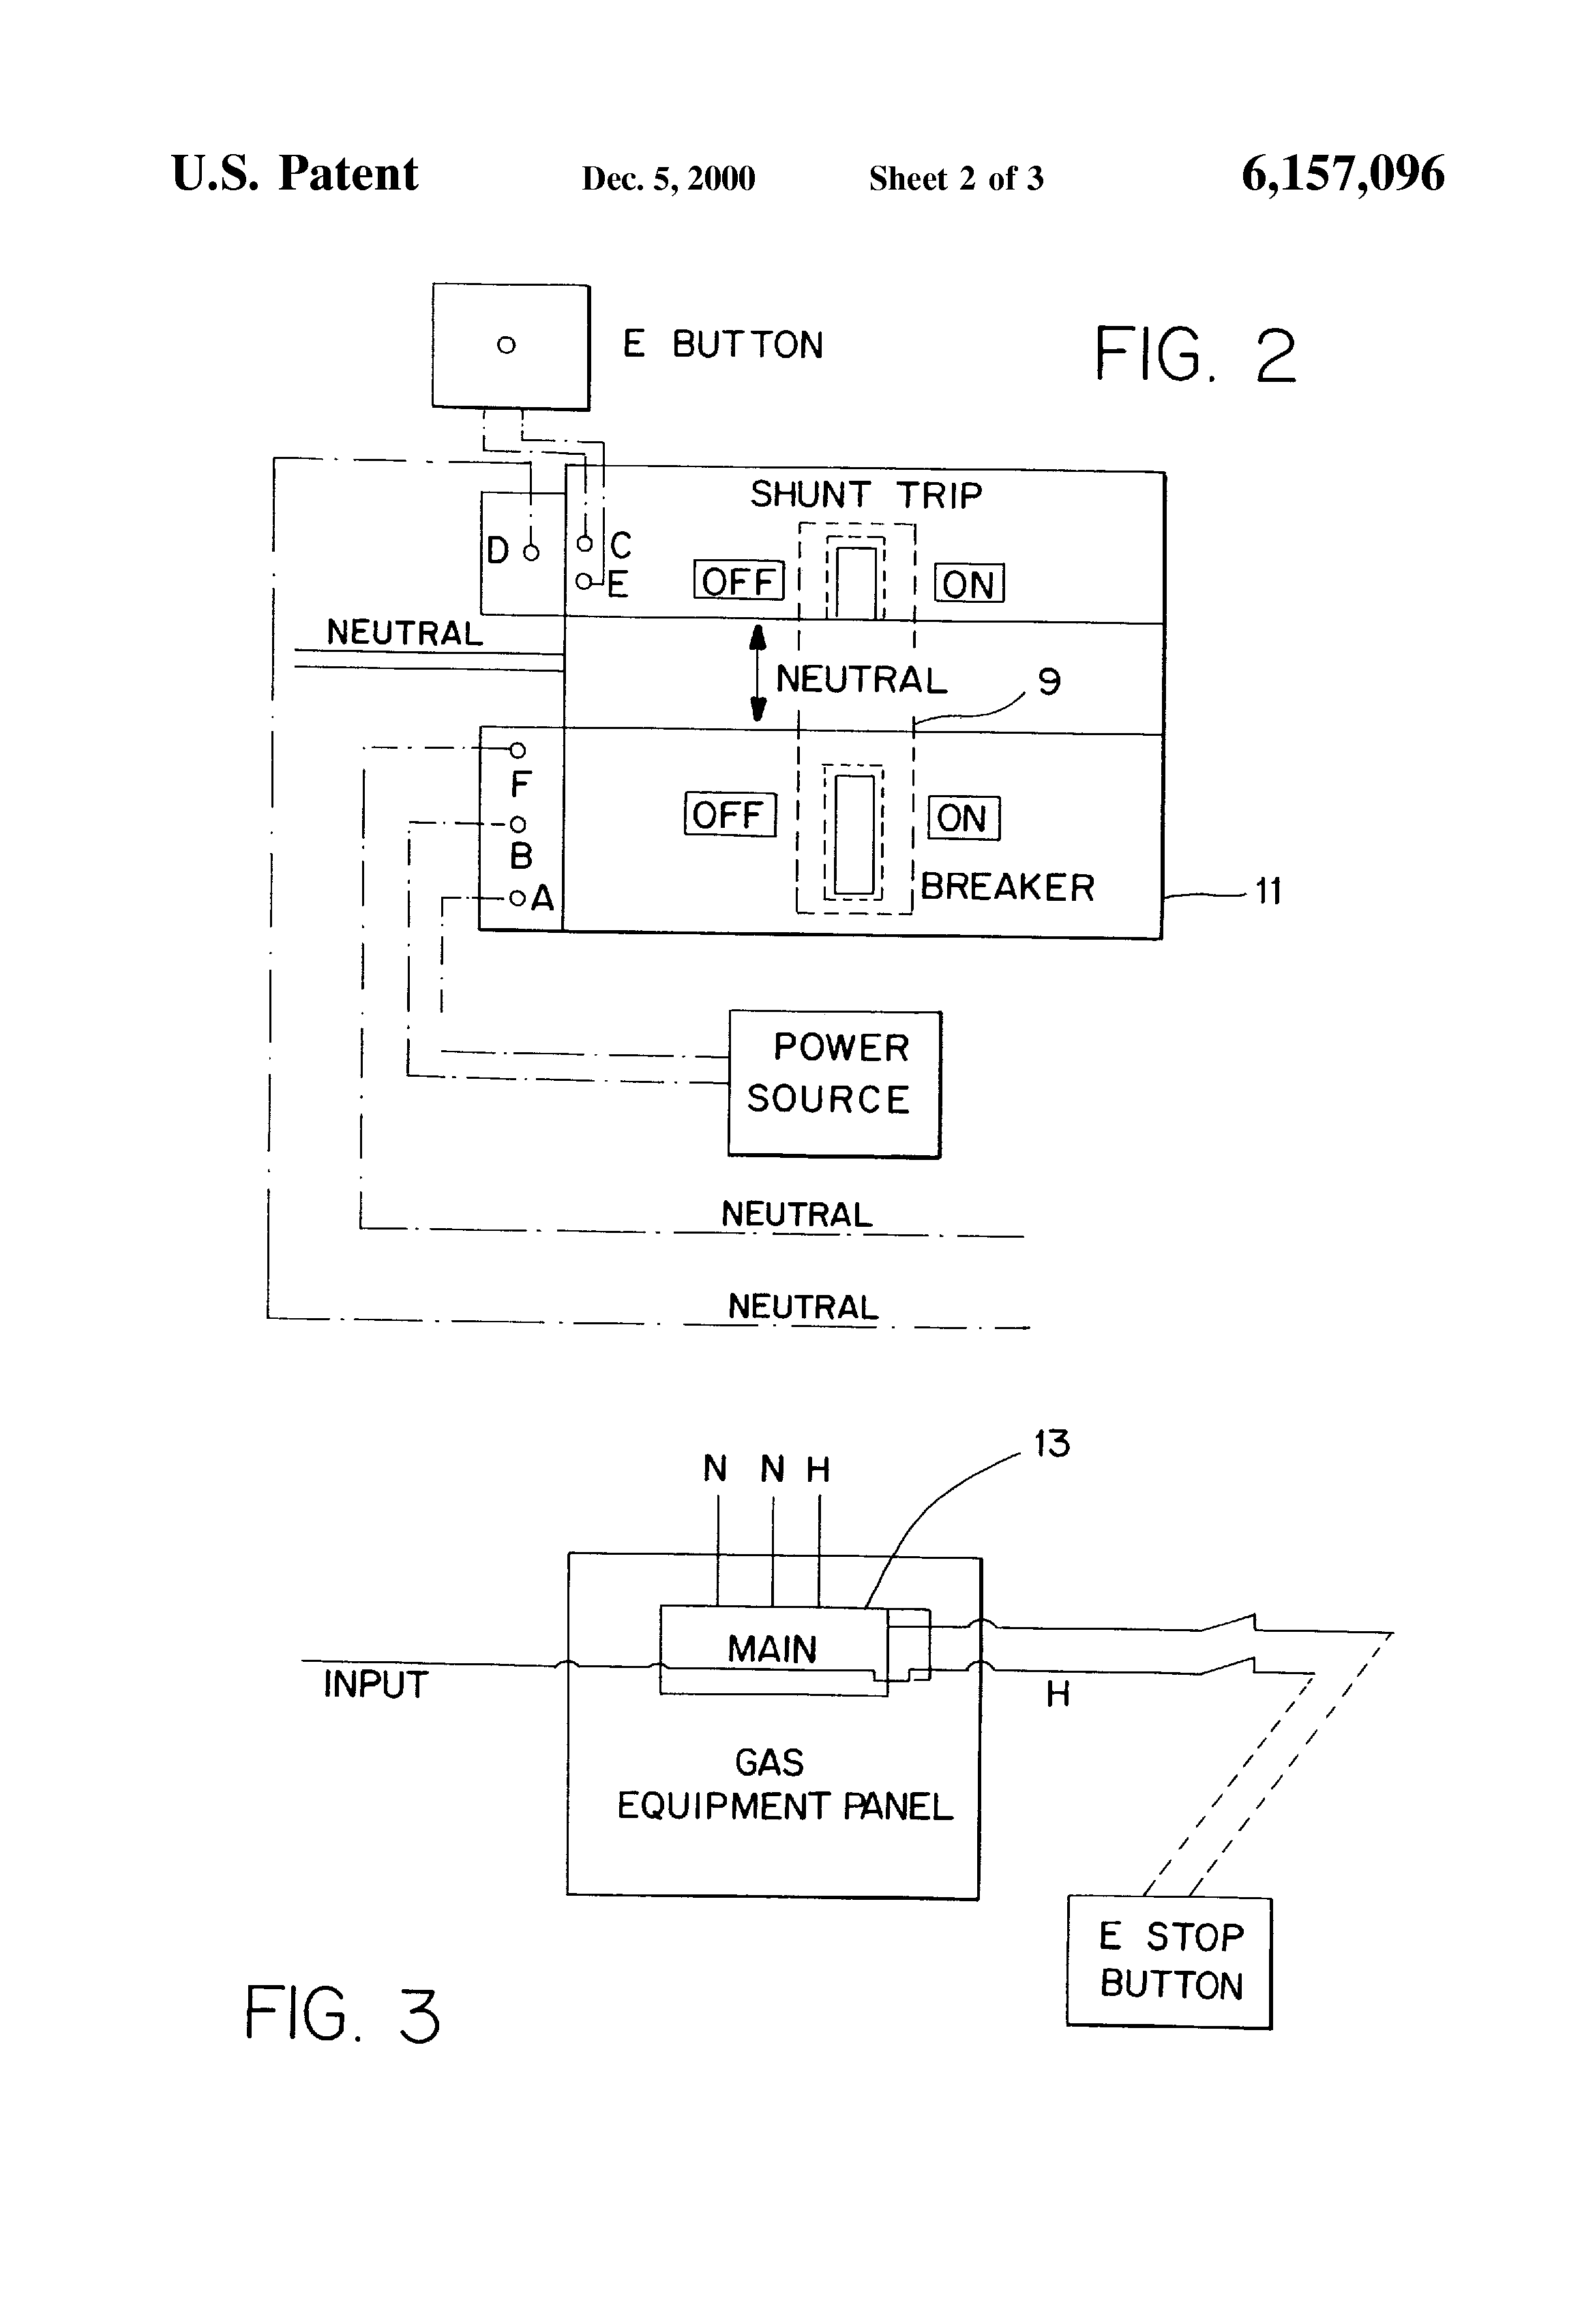 wiring diagram for shunt trip circuit breaker the wiring diagram patent us6157096 neutral switched shunt trip emergency gas panel wiring diagram